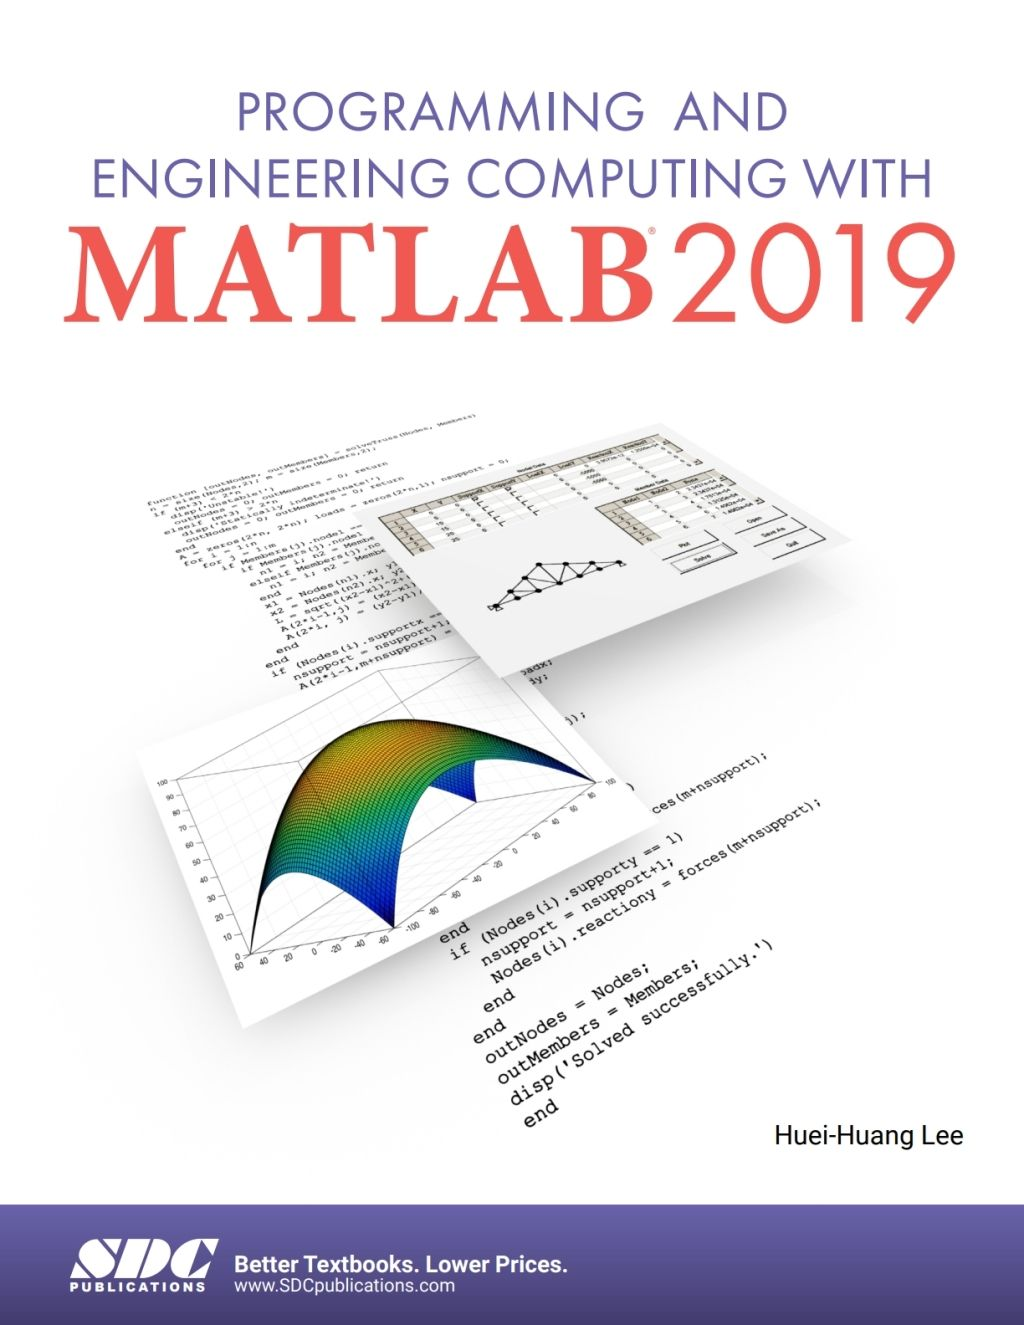 Matlab And Its Applications In Engineering Free Ebook